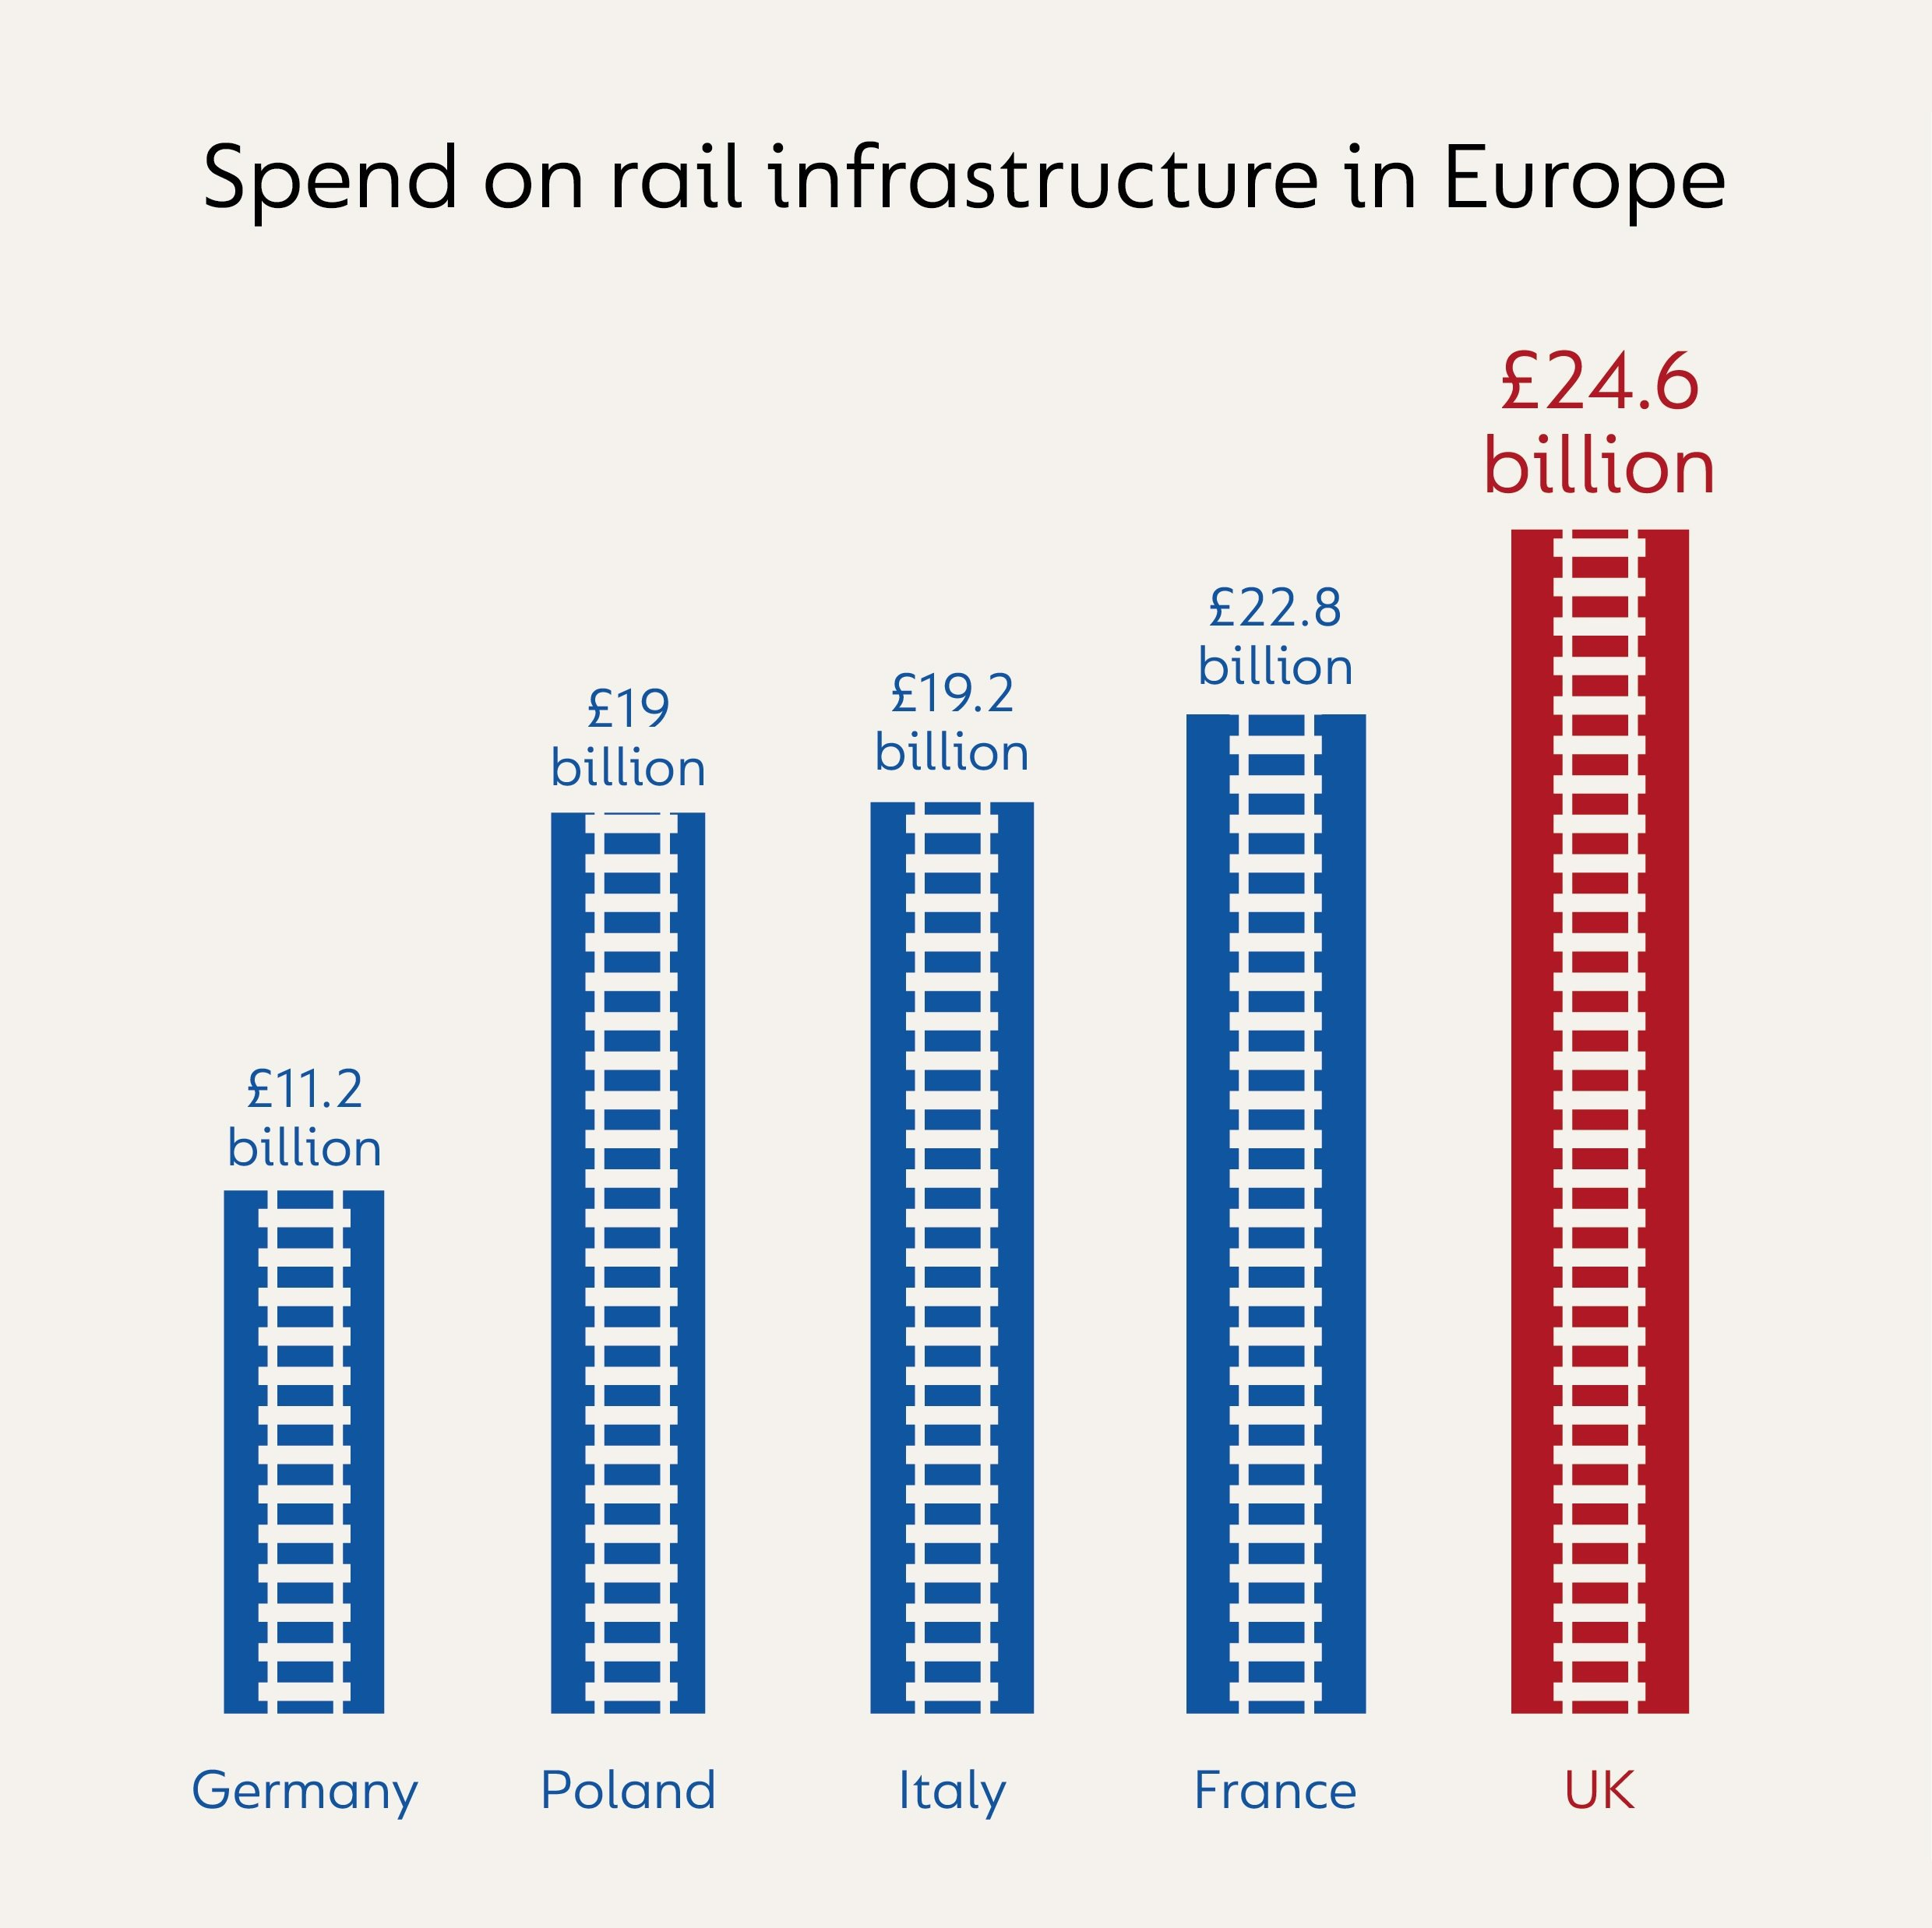 Infographic showing the spend on rail infrastructure in Europe. UK £24.6 billion. Germany £11.2 billion. Poland £19 billion. Italy £19.2 billion. France £22.8 billion.